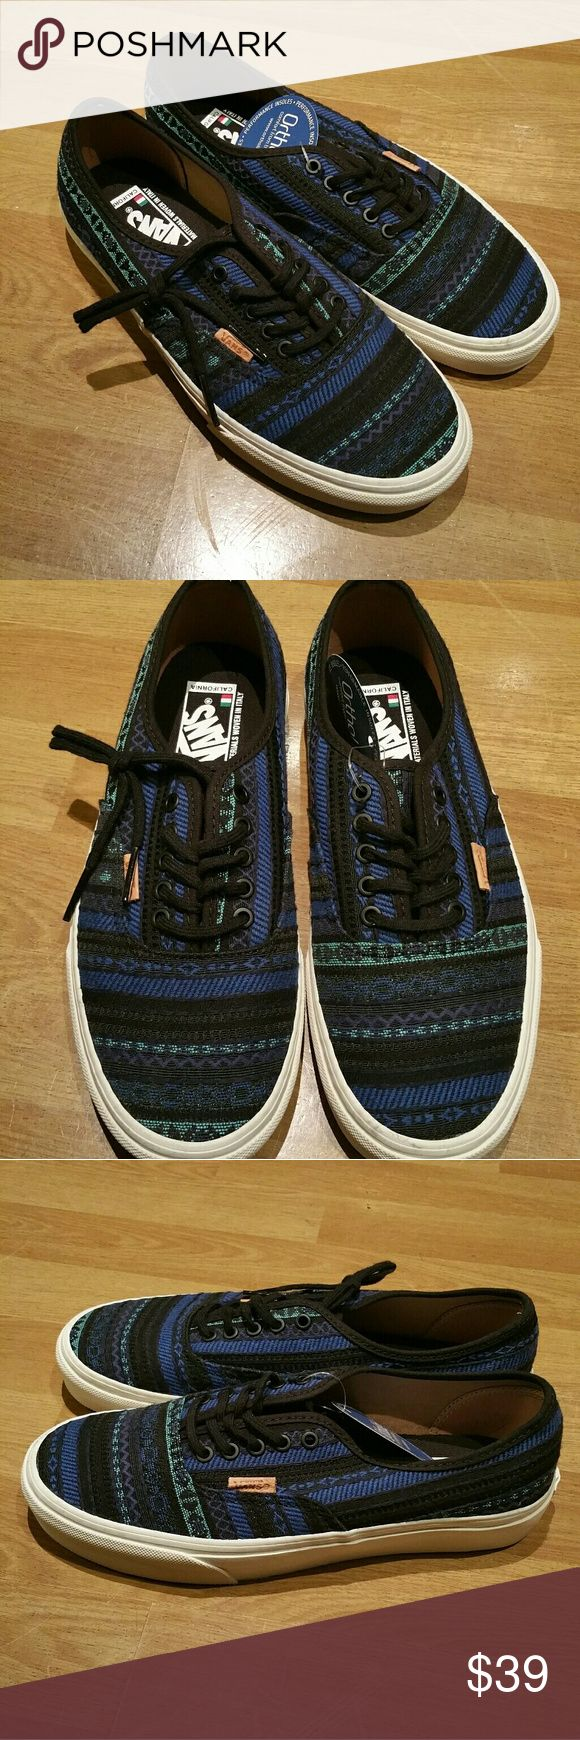 Womens Vans sneakers Brand new. Size 9. Never worn. Materials woven in Italy. Vans Shoes Sneakers